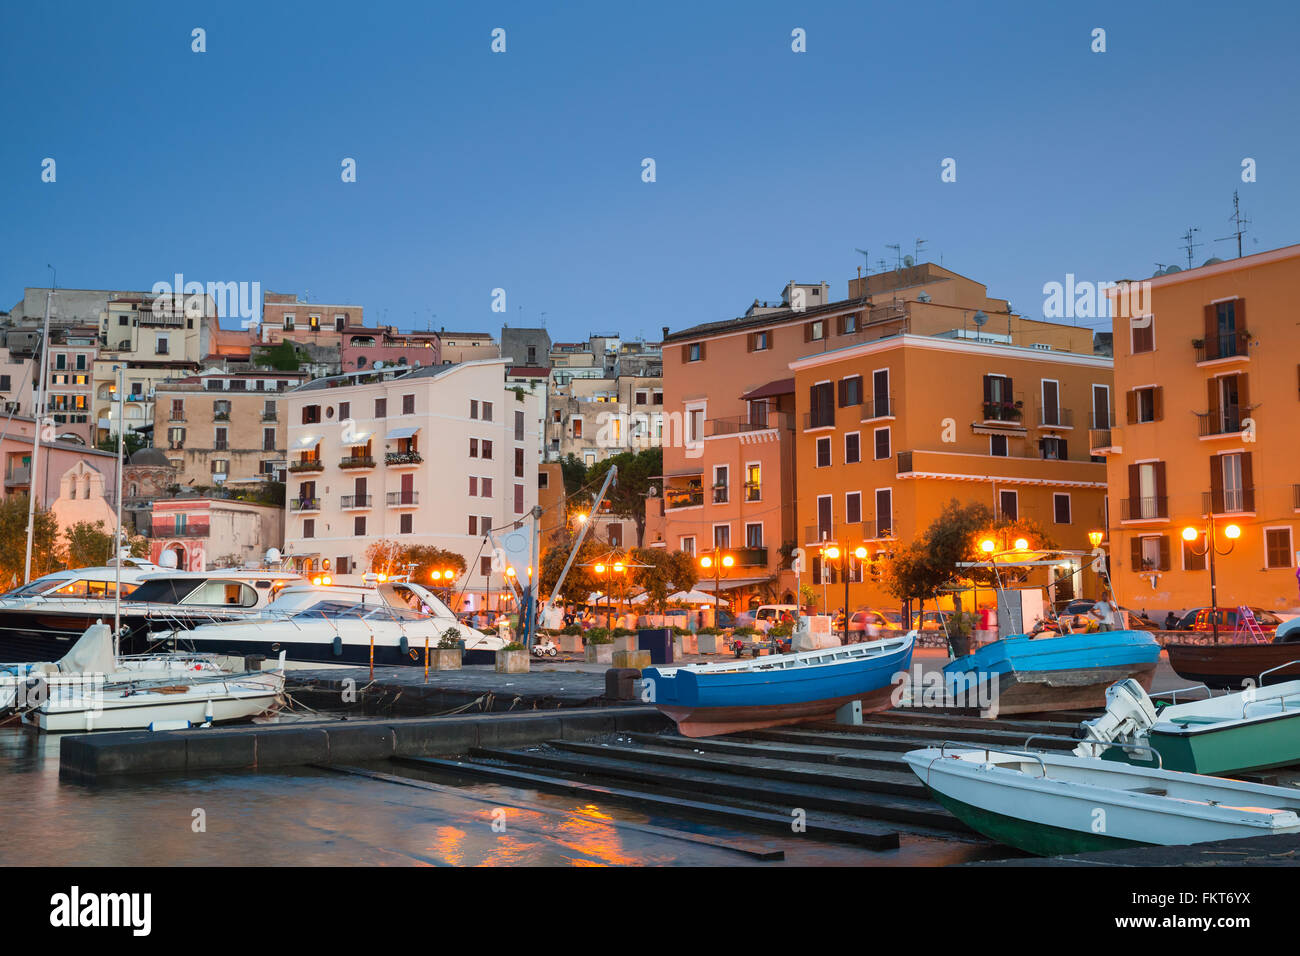 Old port with moored motorboats and yachts. Night cityscape of Gaeta town, Italy - Stock Image